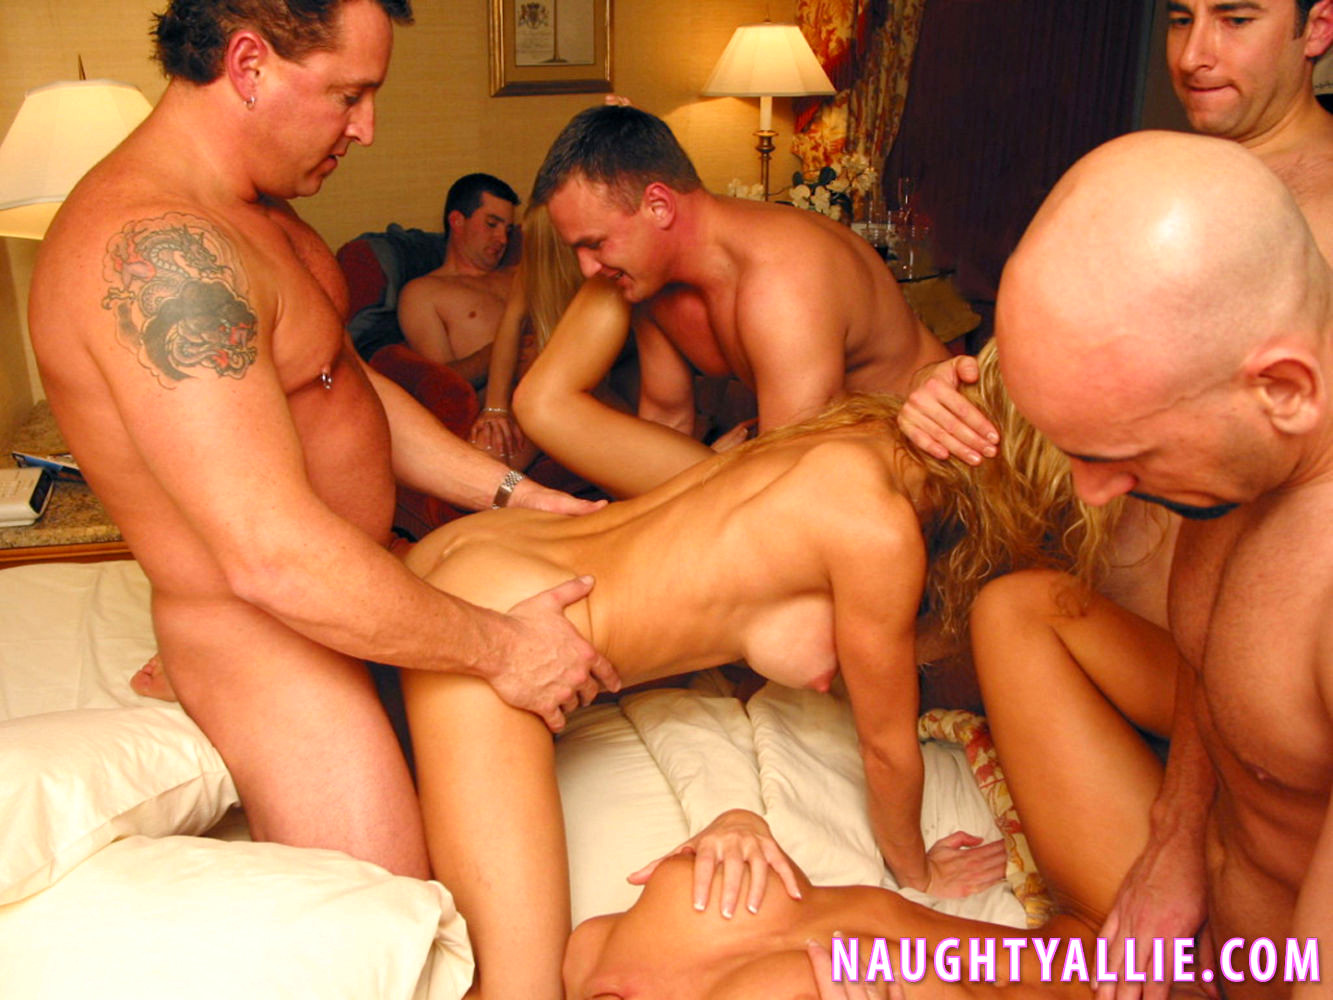 Crazy sex party in vegas